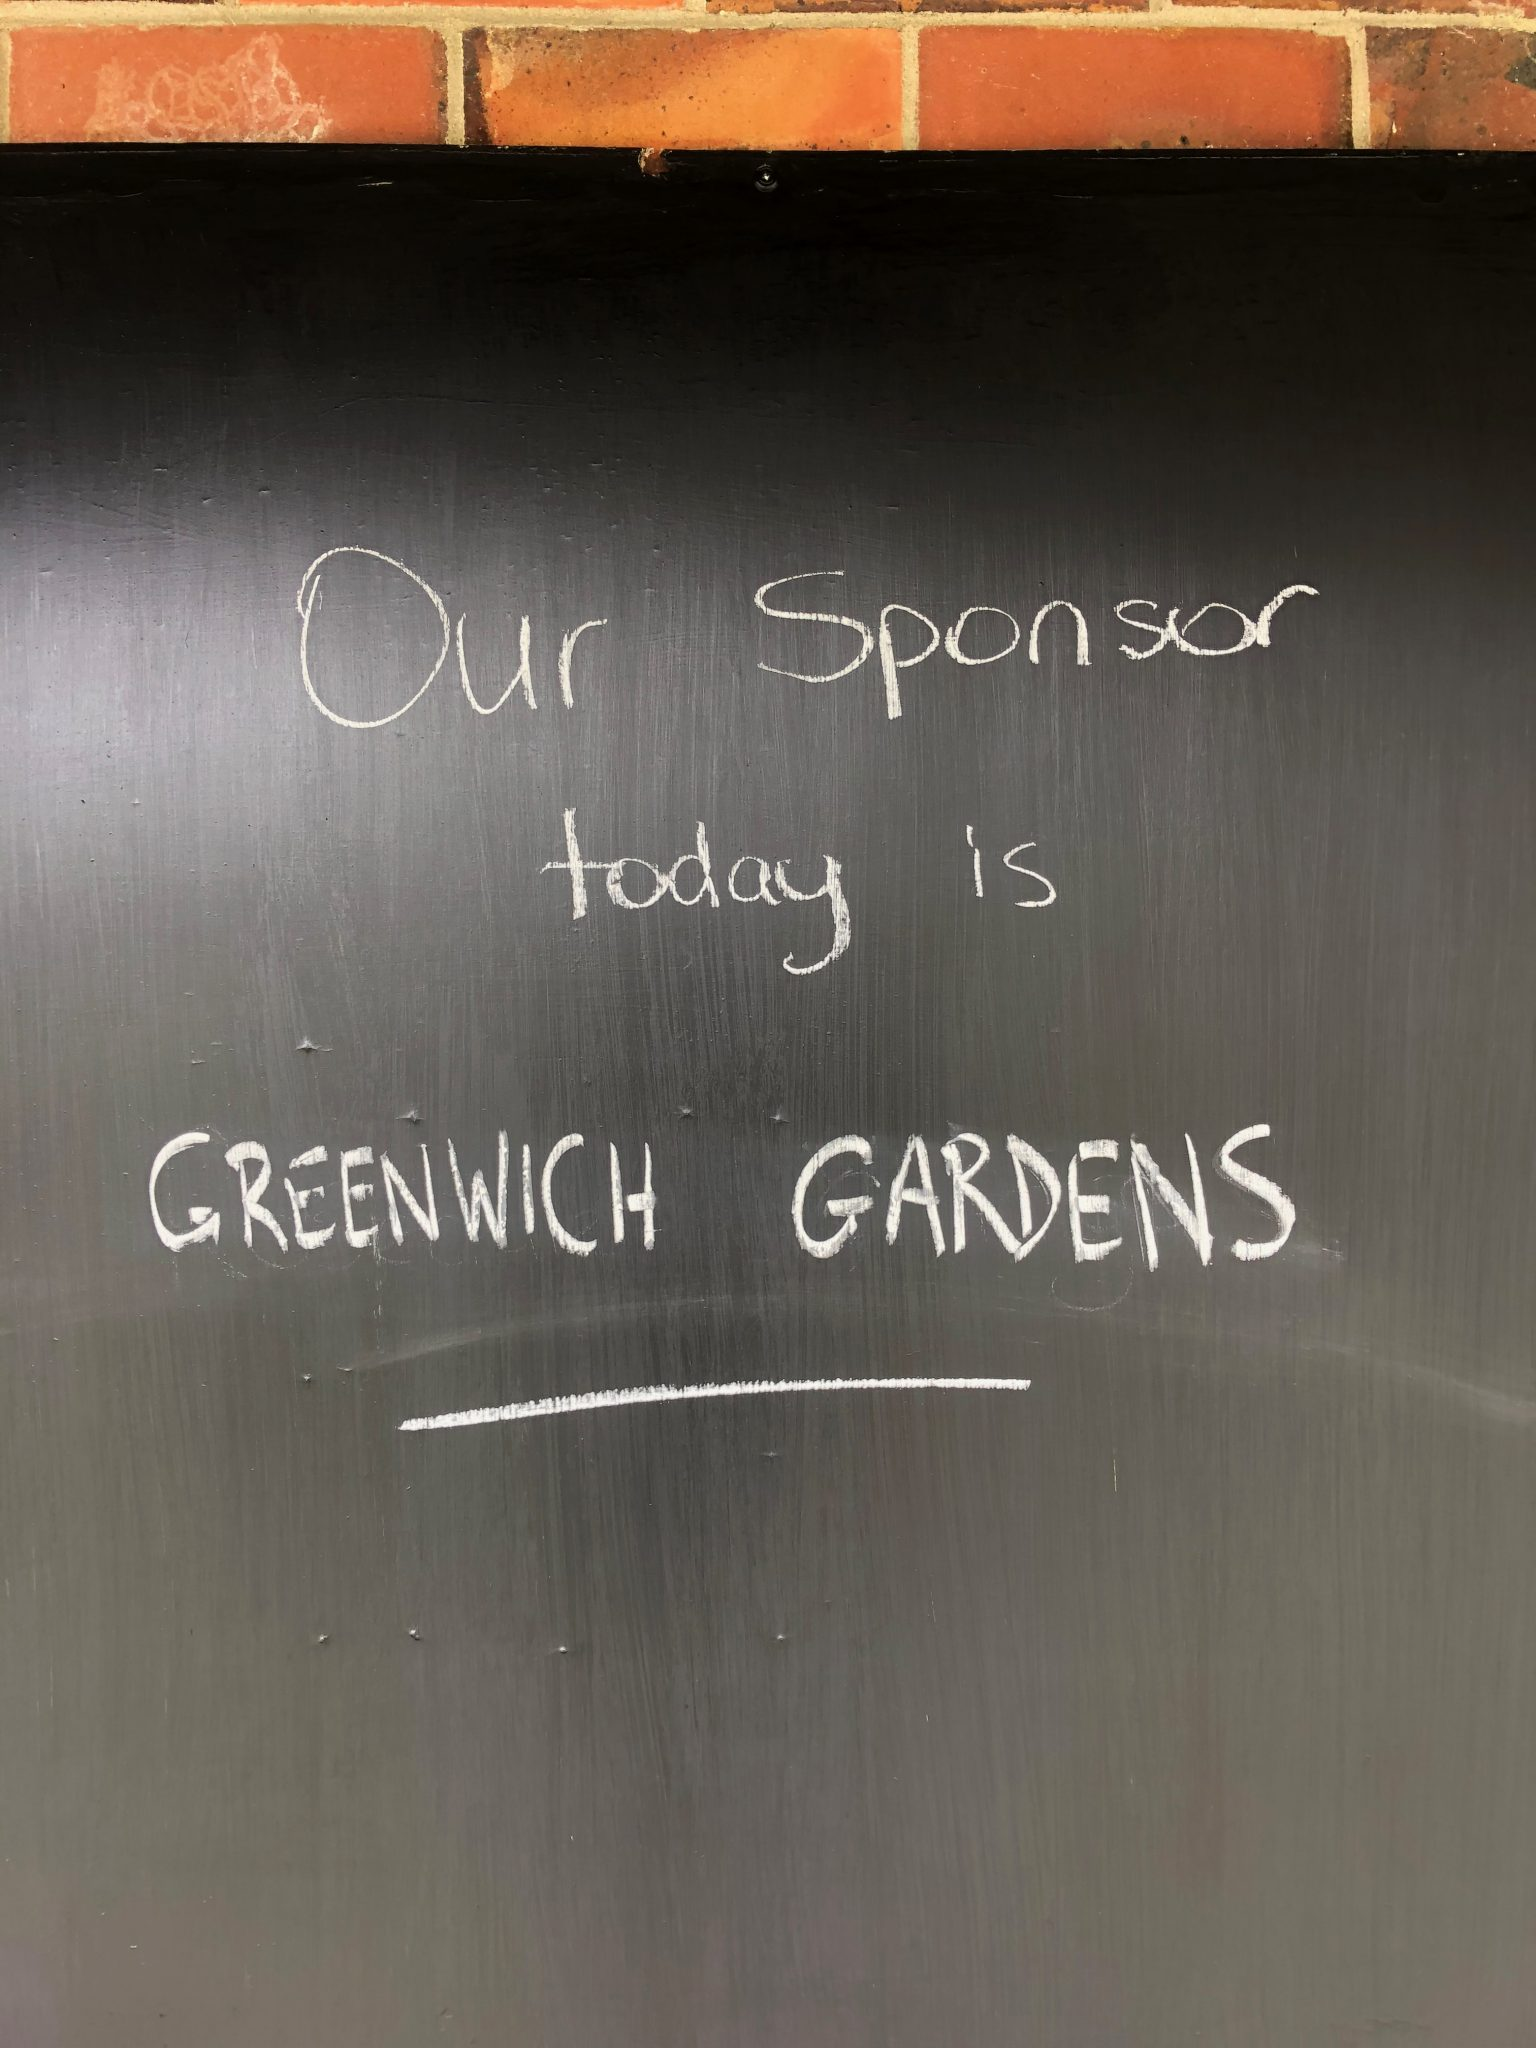 Greenwich Gardens Founders – Wed 10 & Thurs 11 March 2021